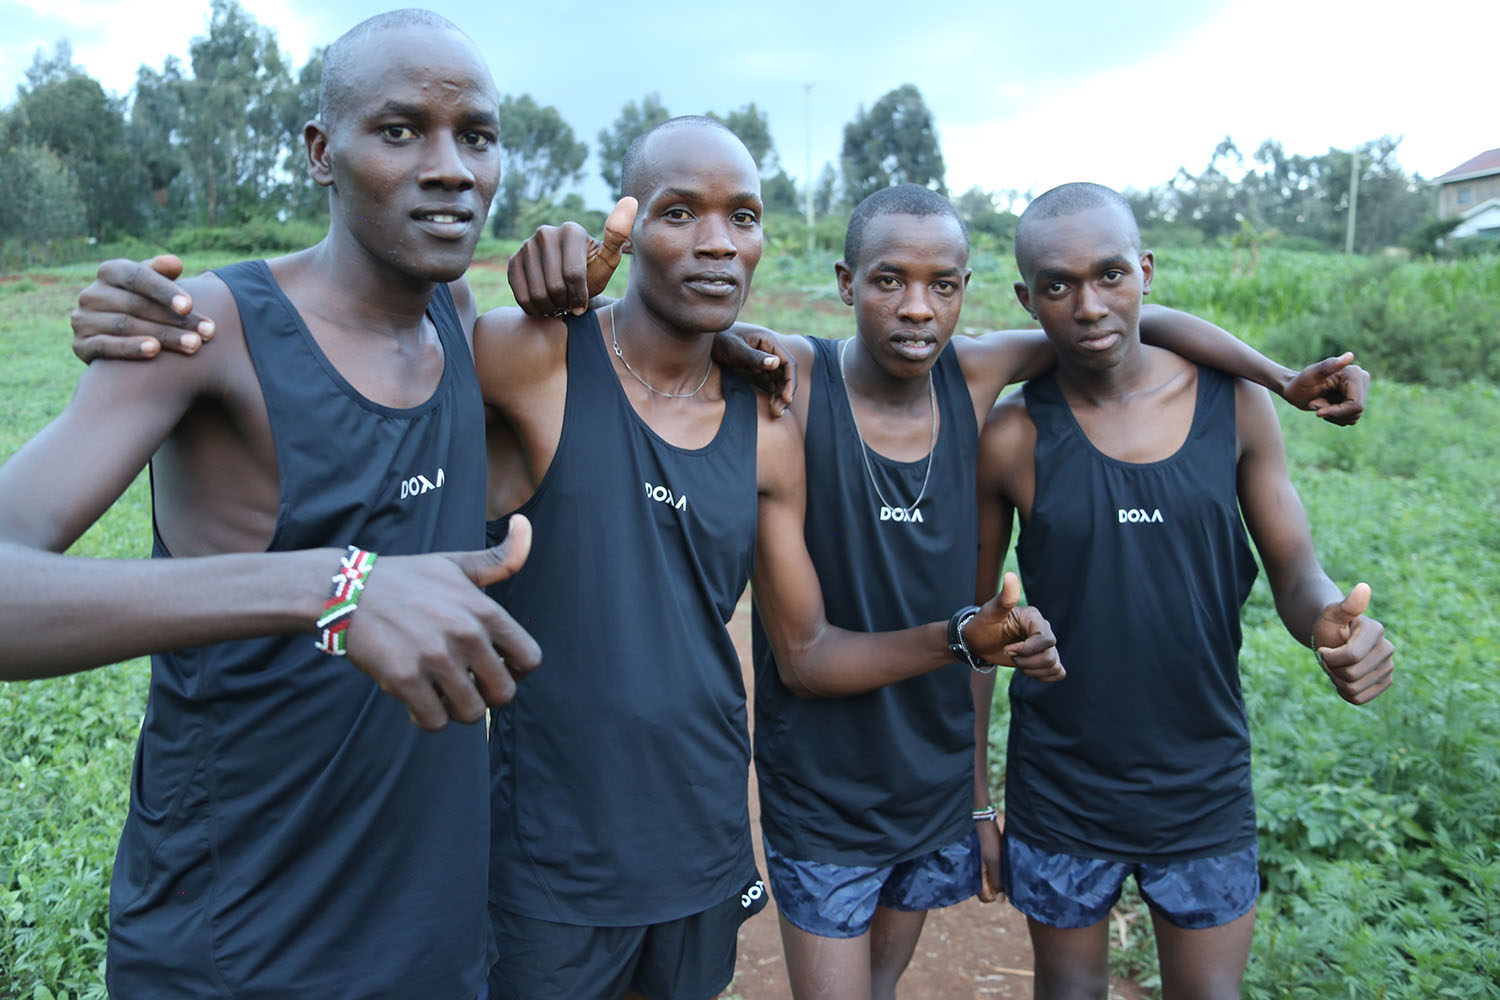 DOXA run is supporting running talents from The Kenswed Academy with running apparel each season.